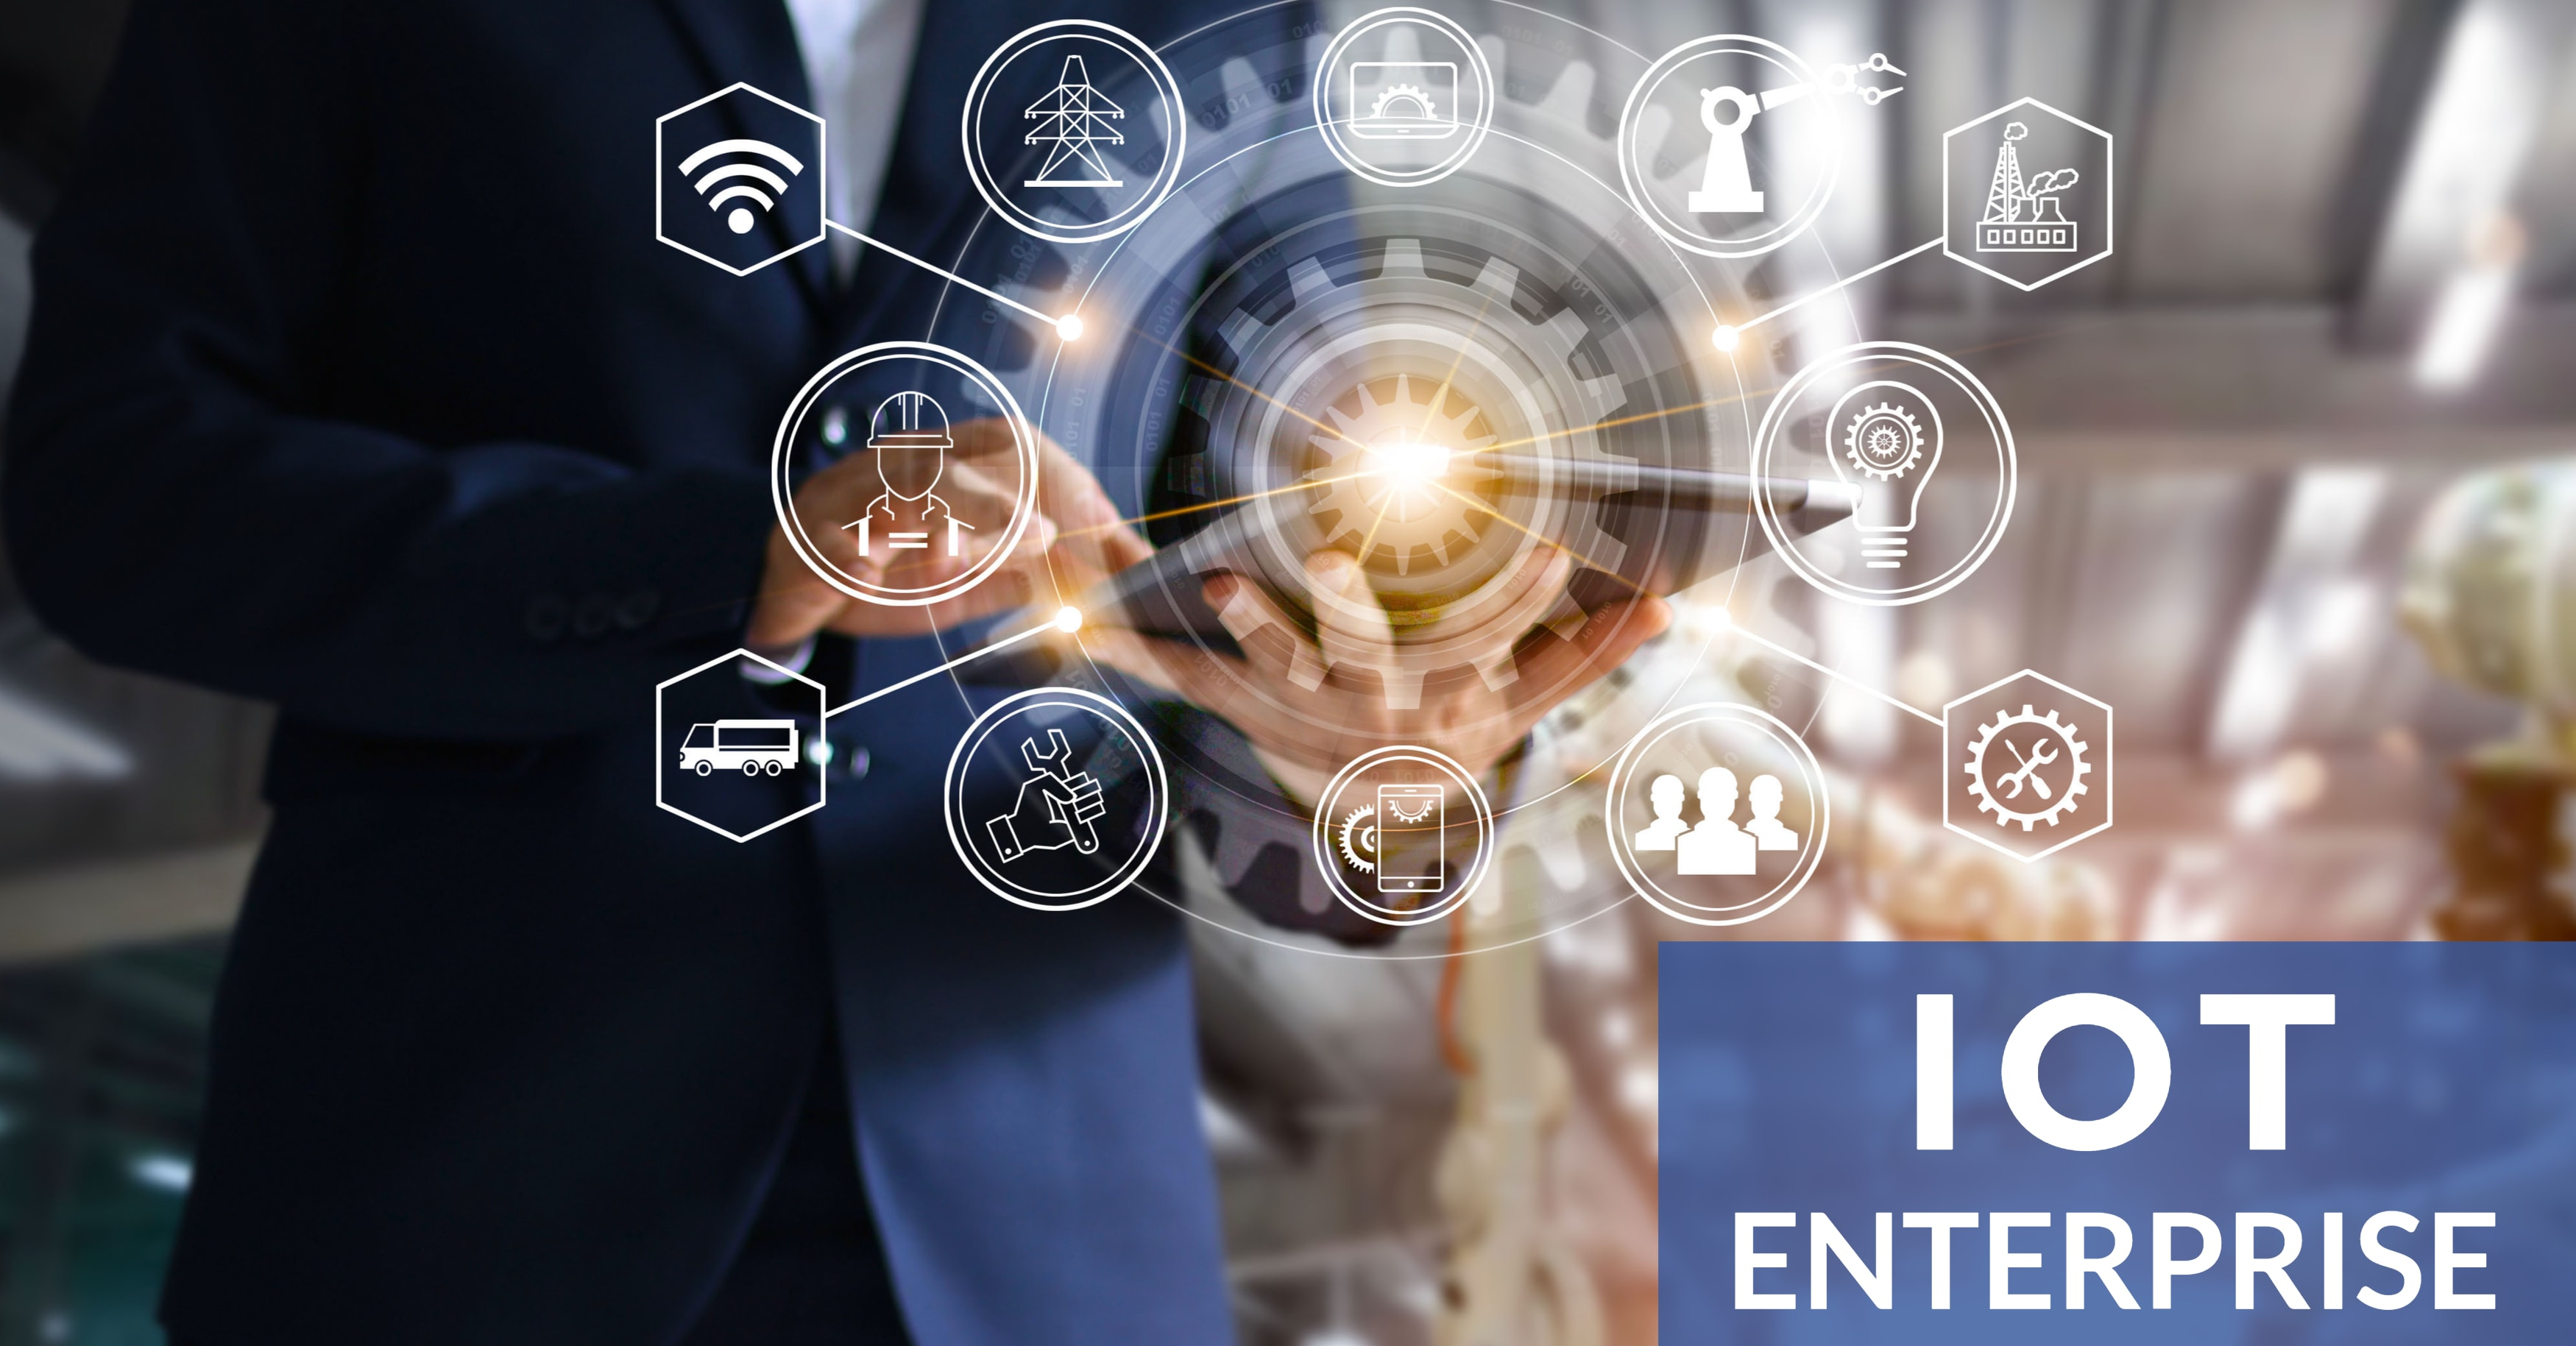 Your Business Needs to Become an IoT Enterprise